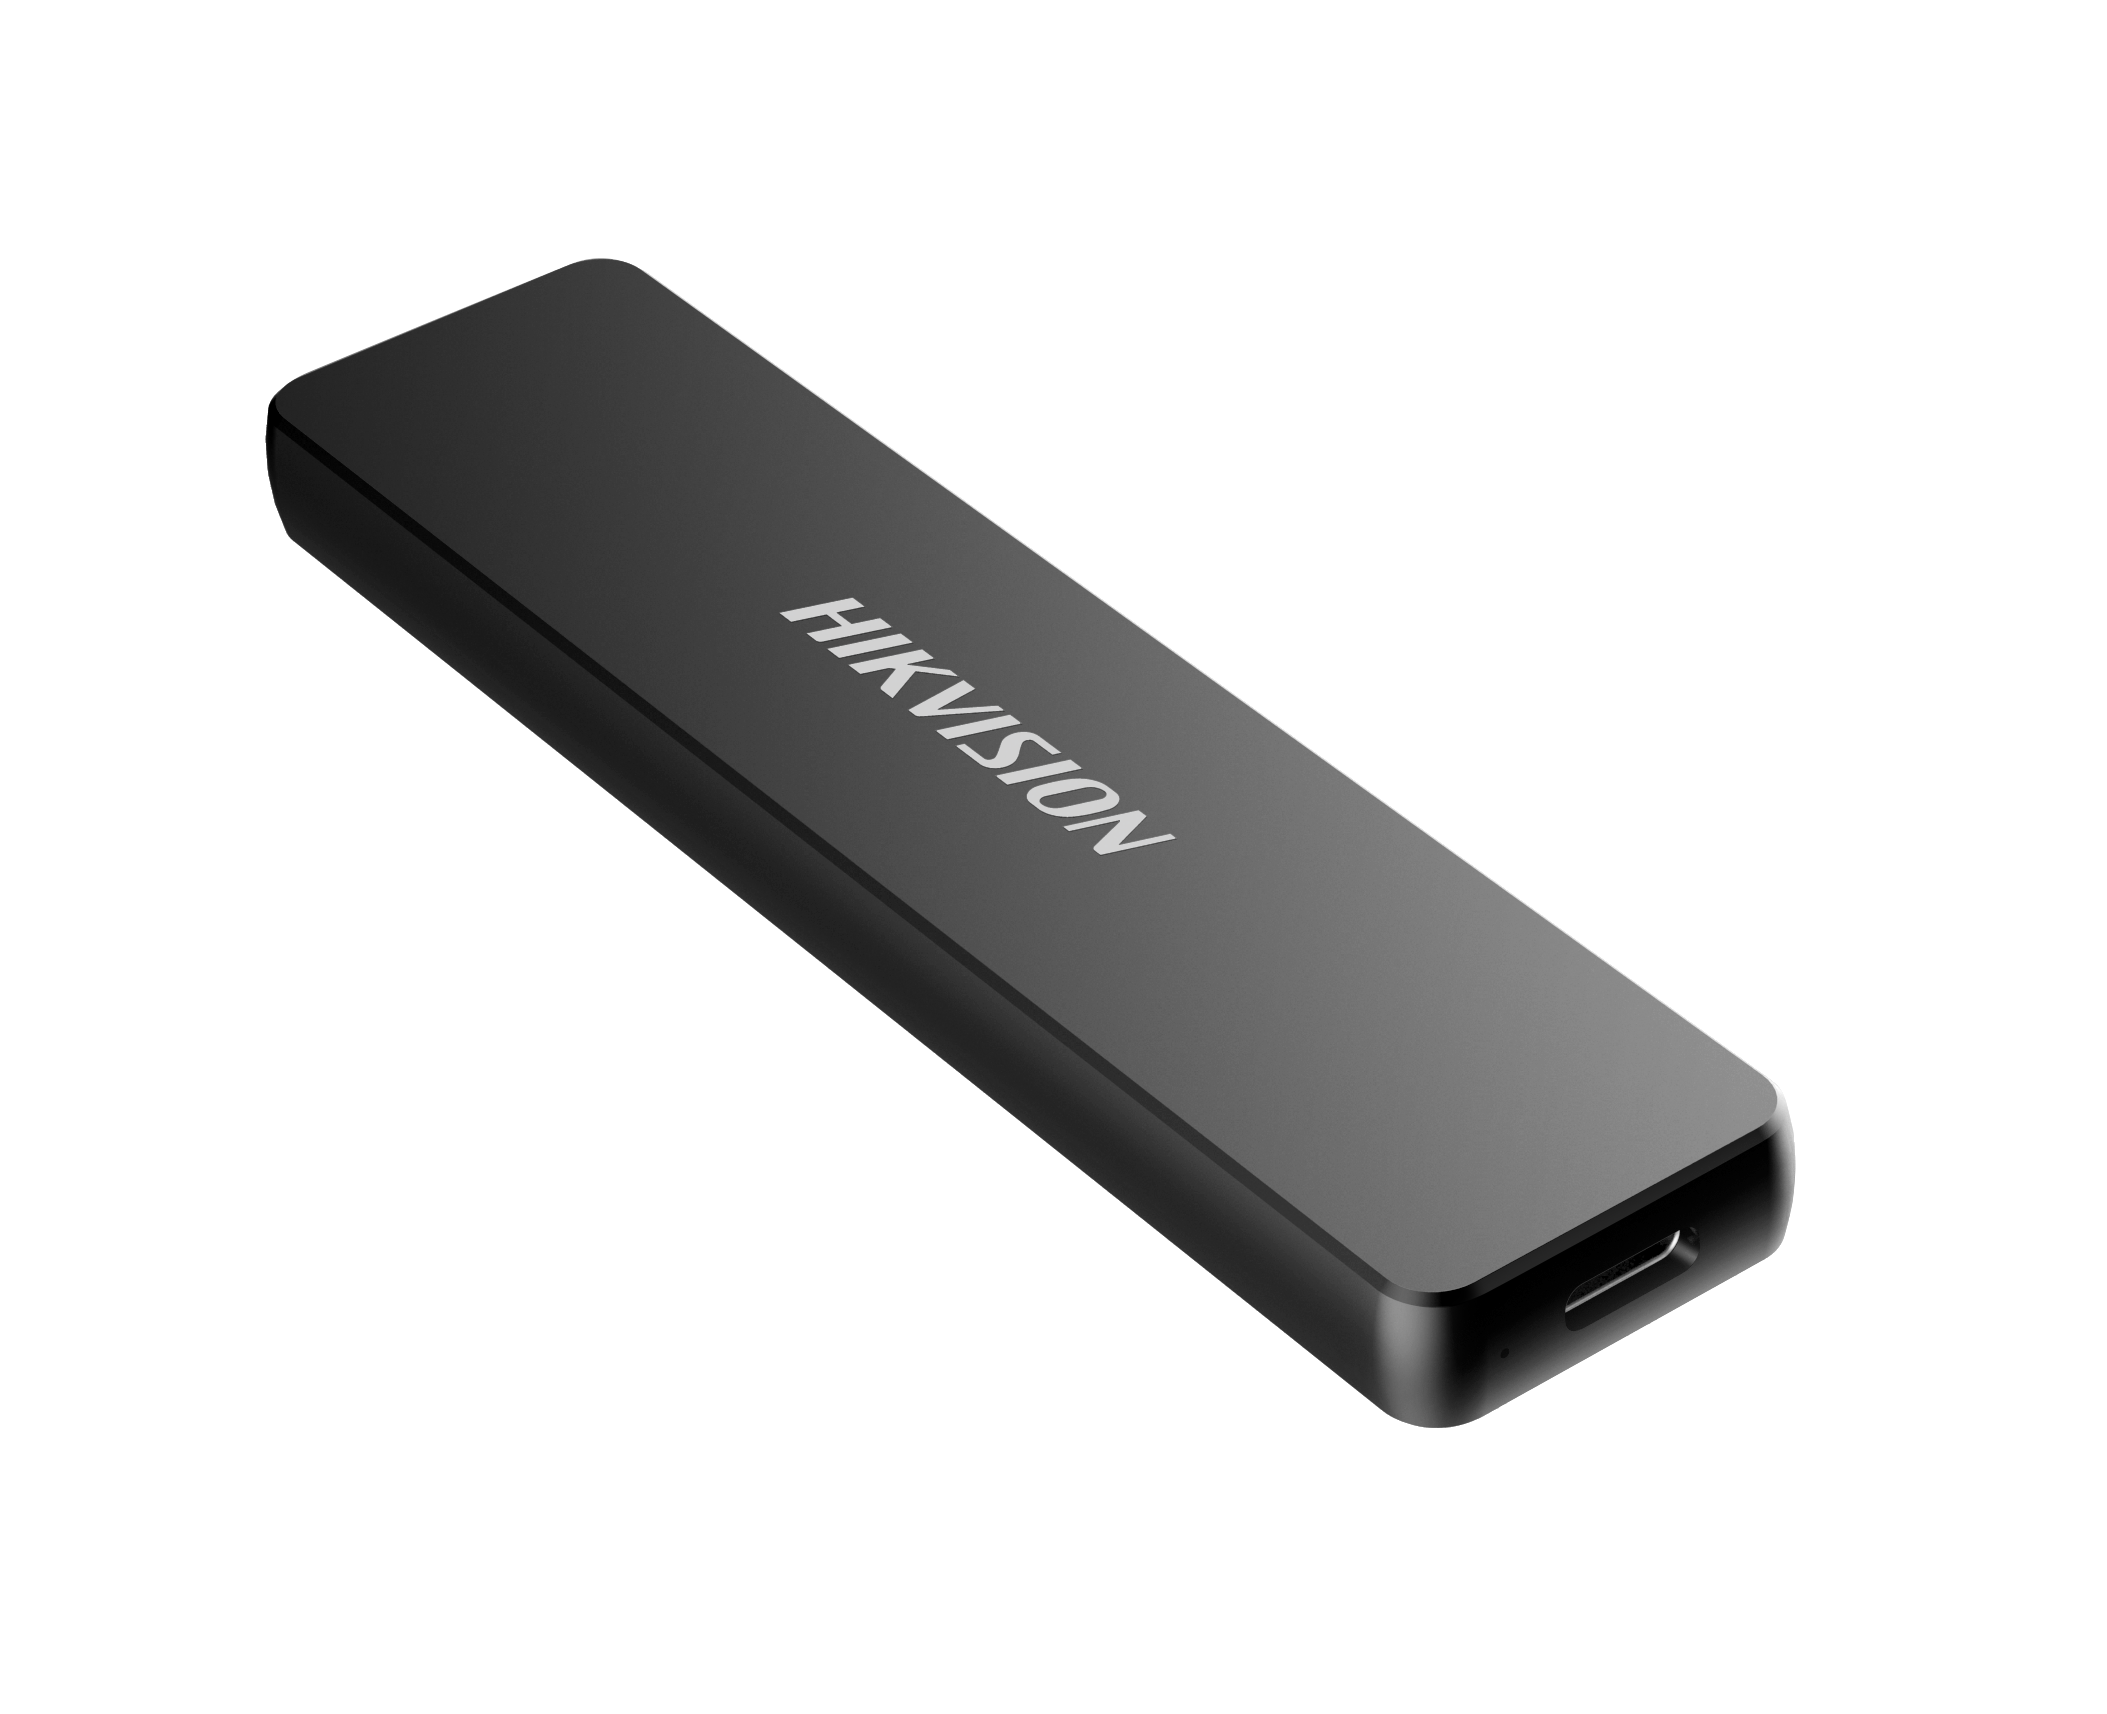 Hikvision T1000 Série Portable 512G 1024G <span class=keywords><strong>SSD</strong></span> Ultra-Rapide Type-<span class=keywords><strong>c</strong></span> Android PC Portable <span class=keywords><strong>SSD</strong></span>